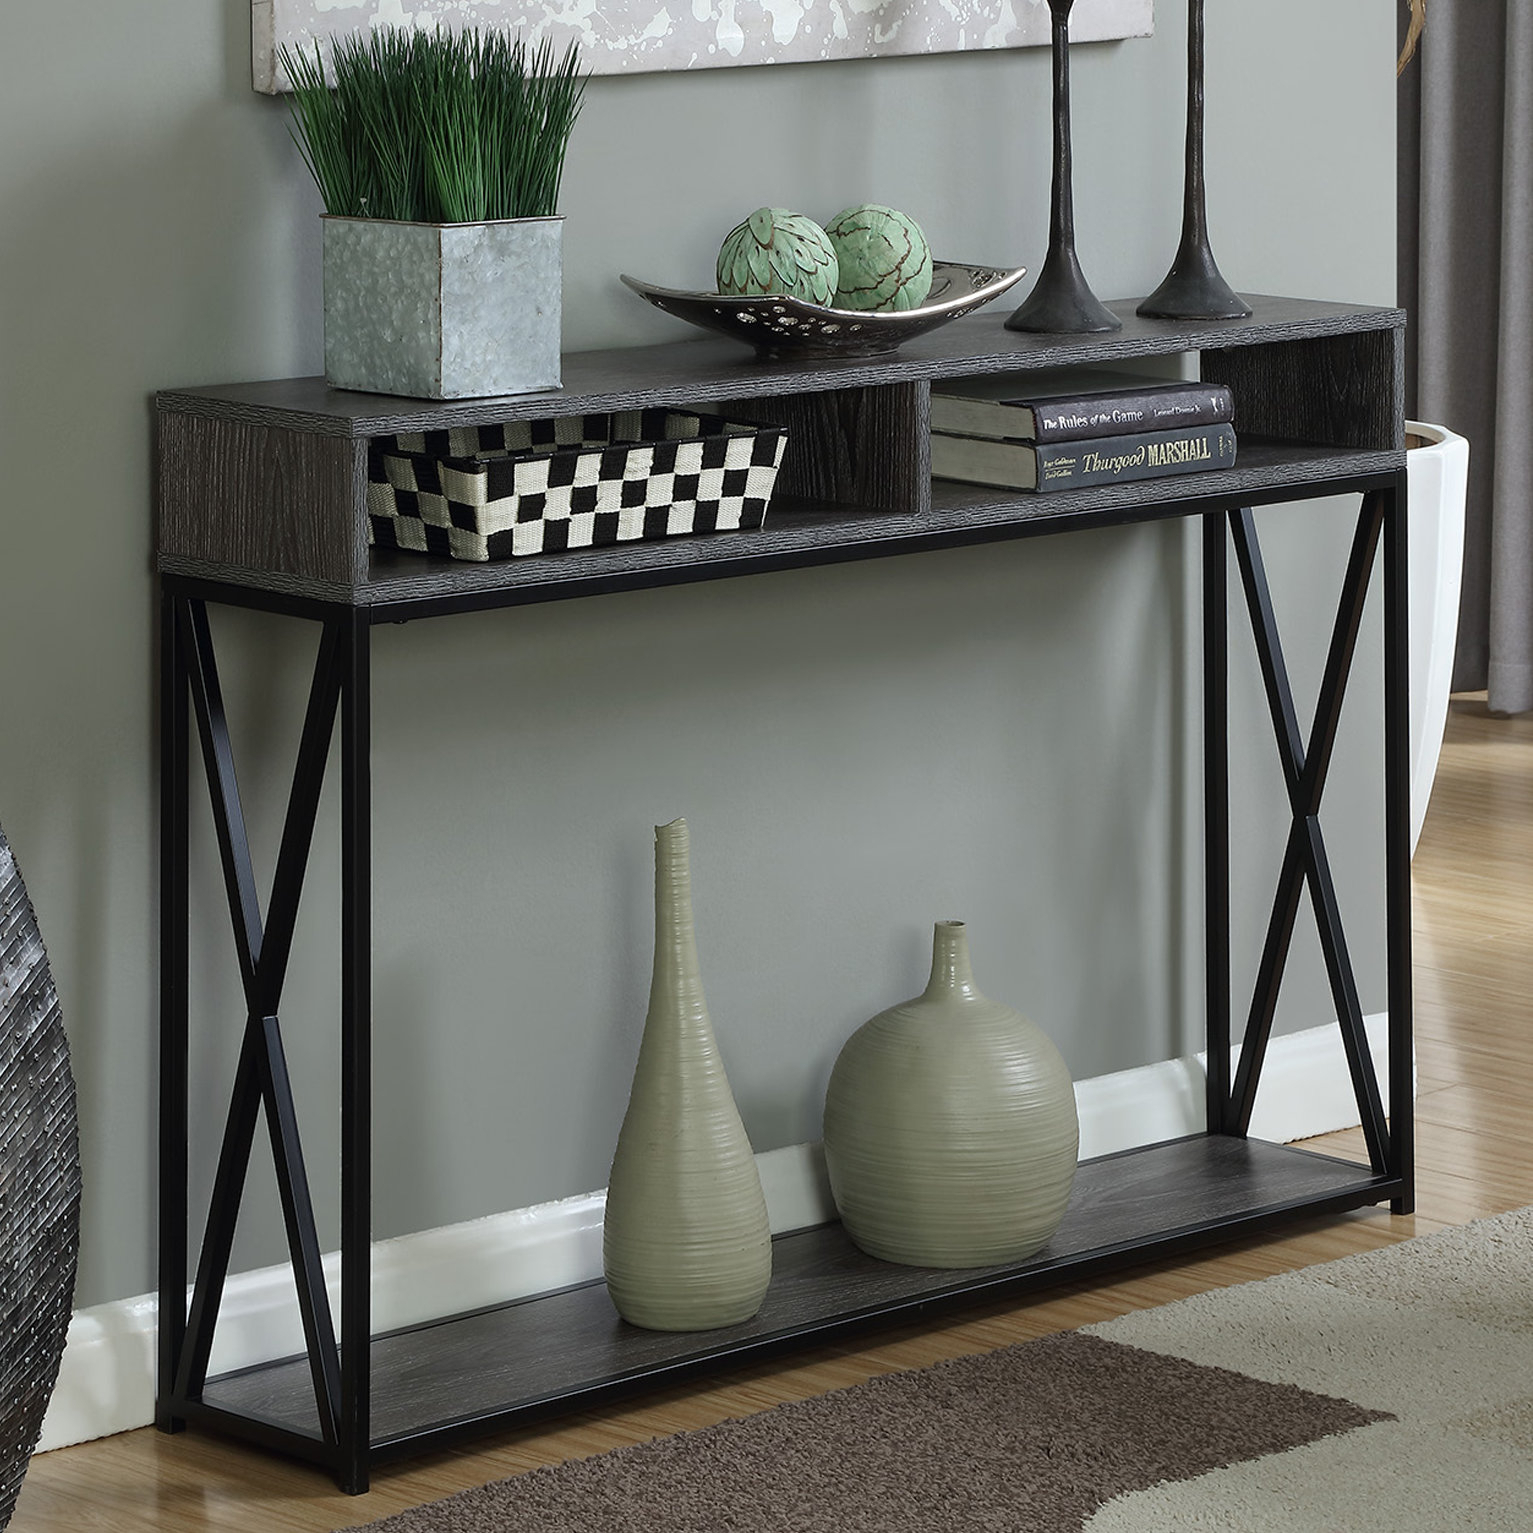 Narrow Console Tables You'll Love | Wayfair.ca inside Mix Patina Metal Frame Console Tables (Image 20 of 30)